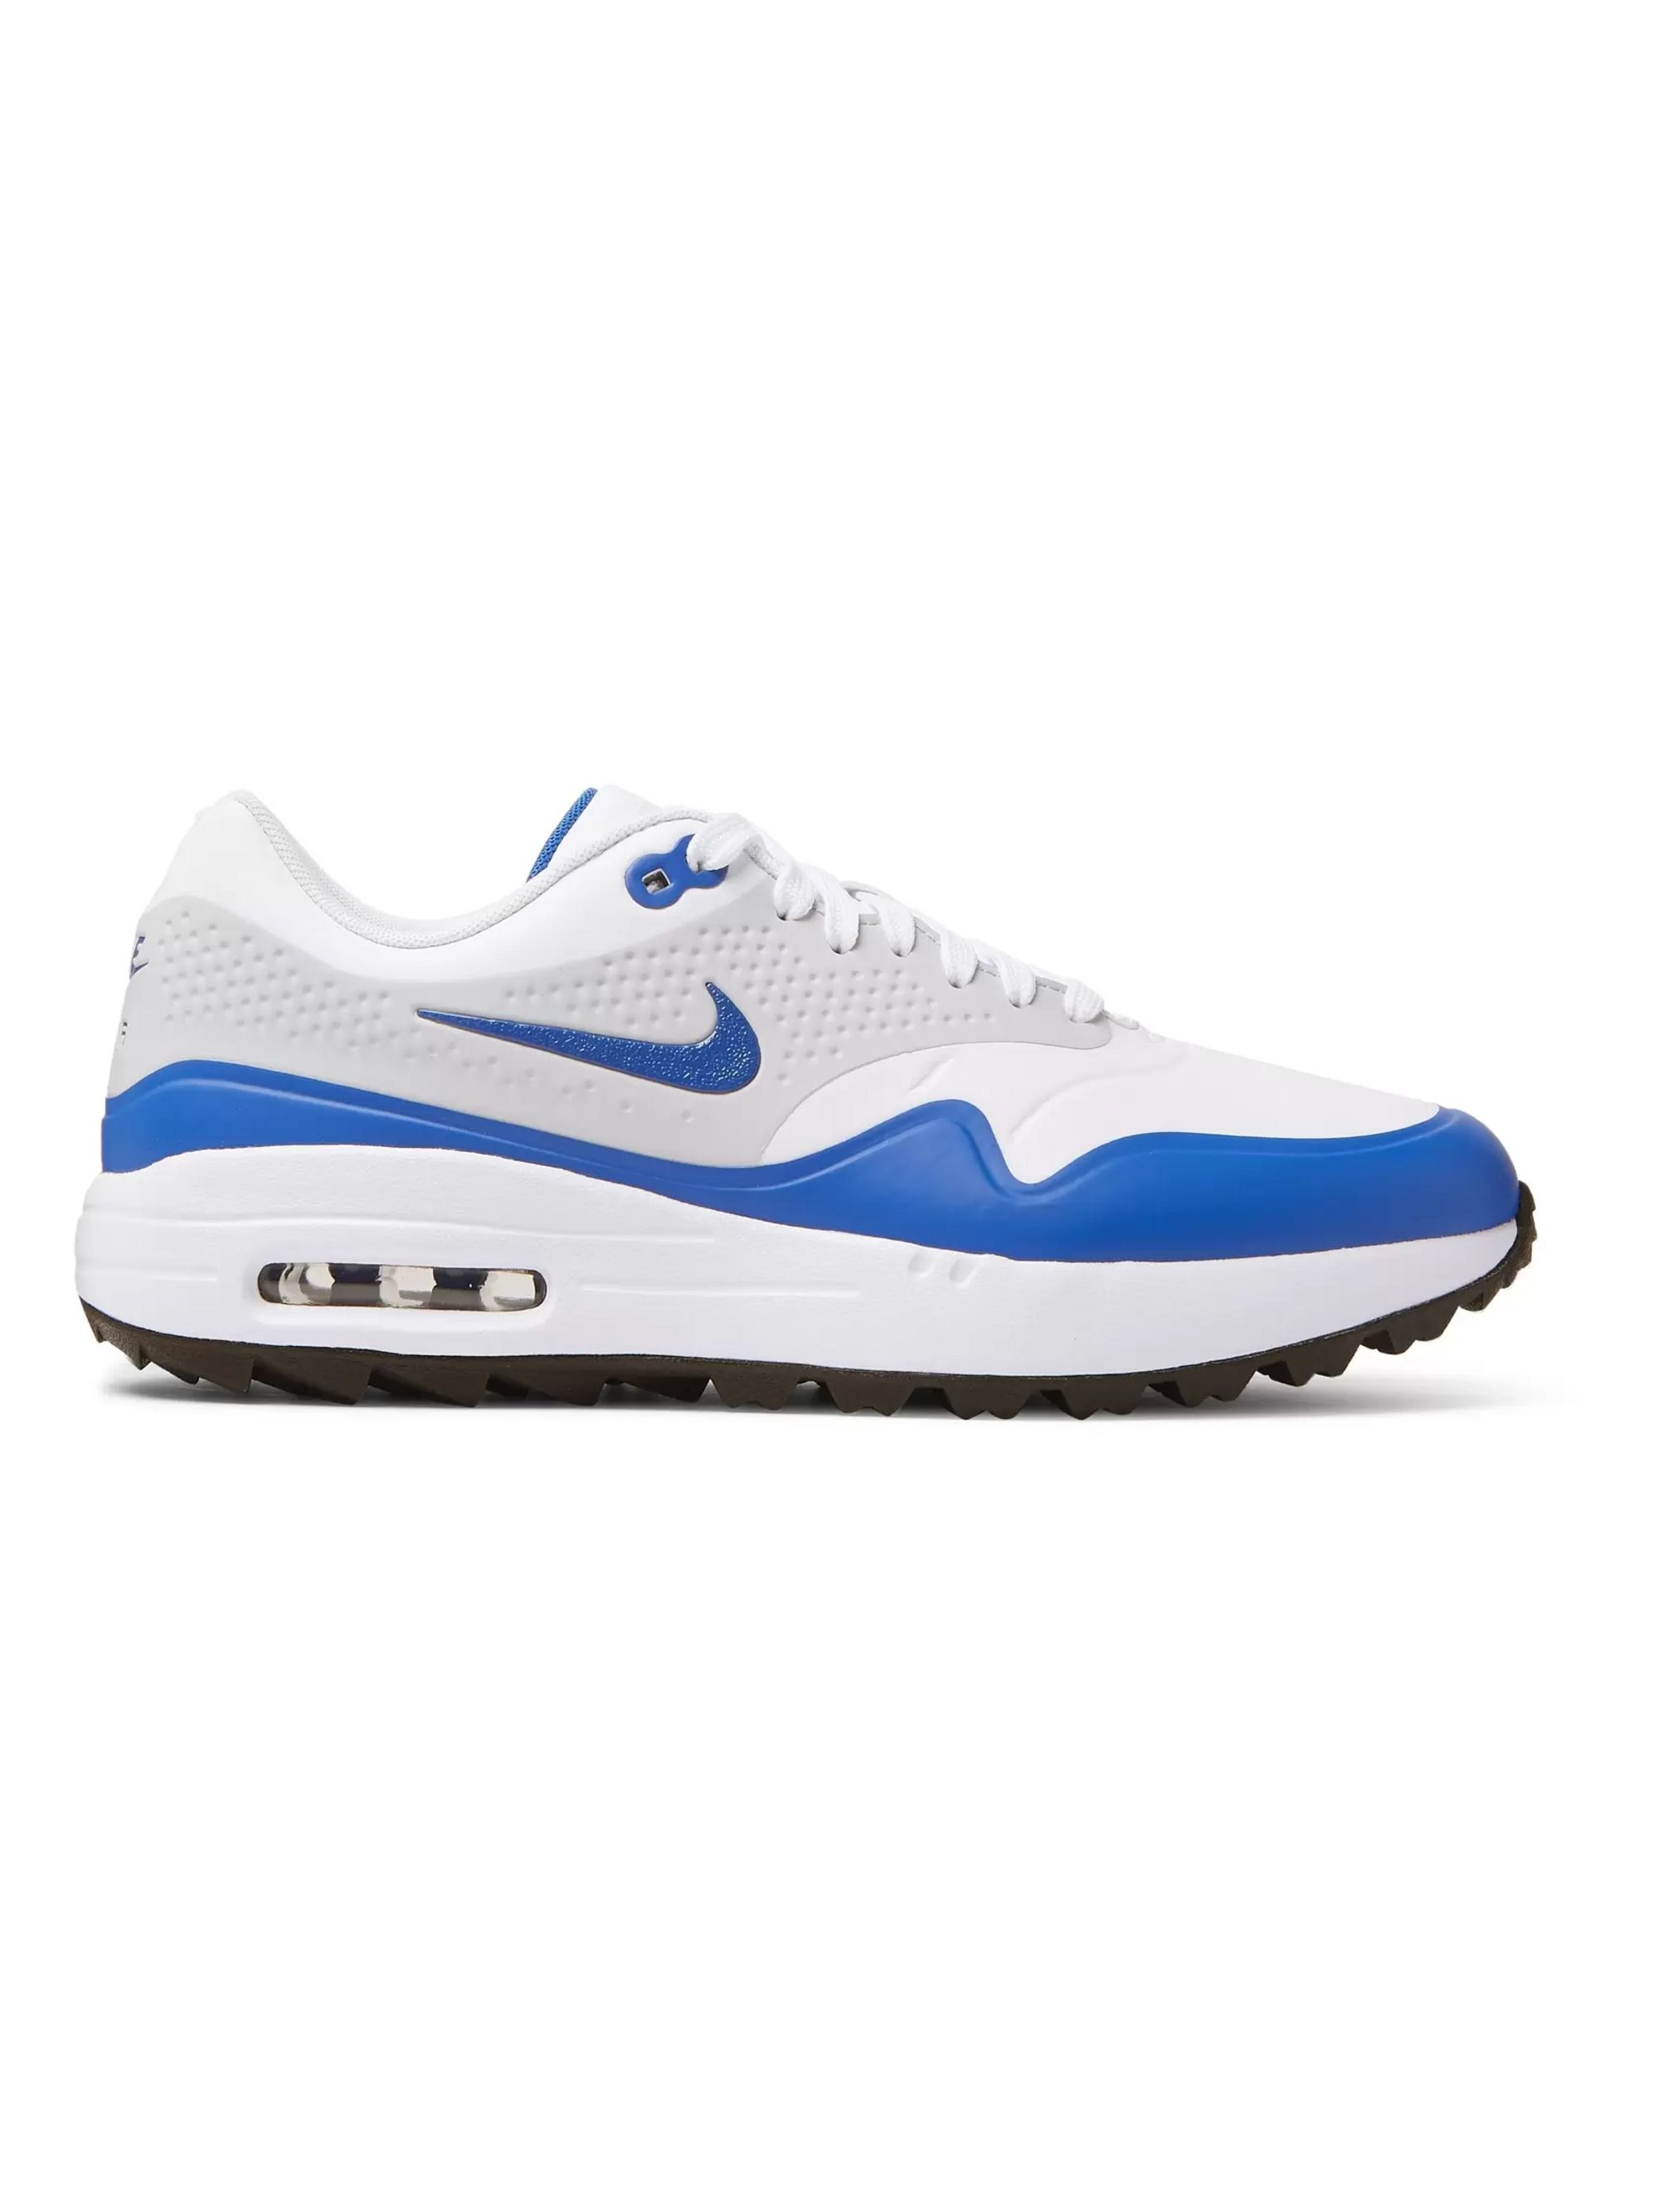 Nike Golf Air Max 1G Coated-Mesh Golf Shoes